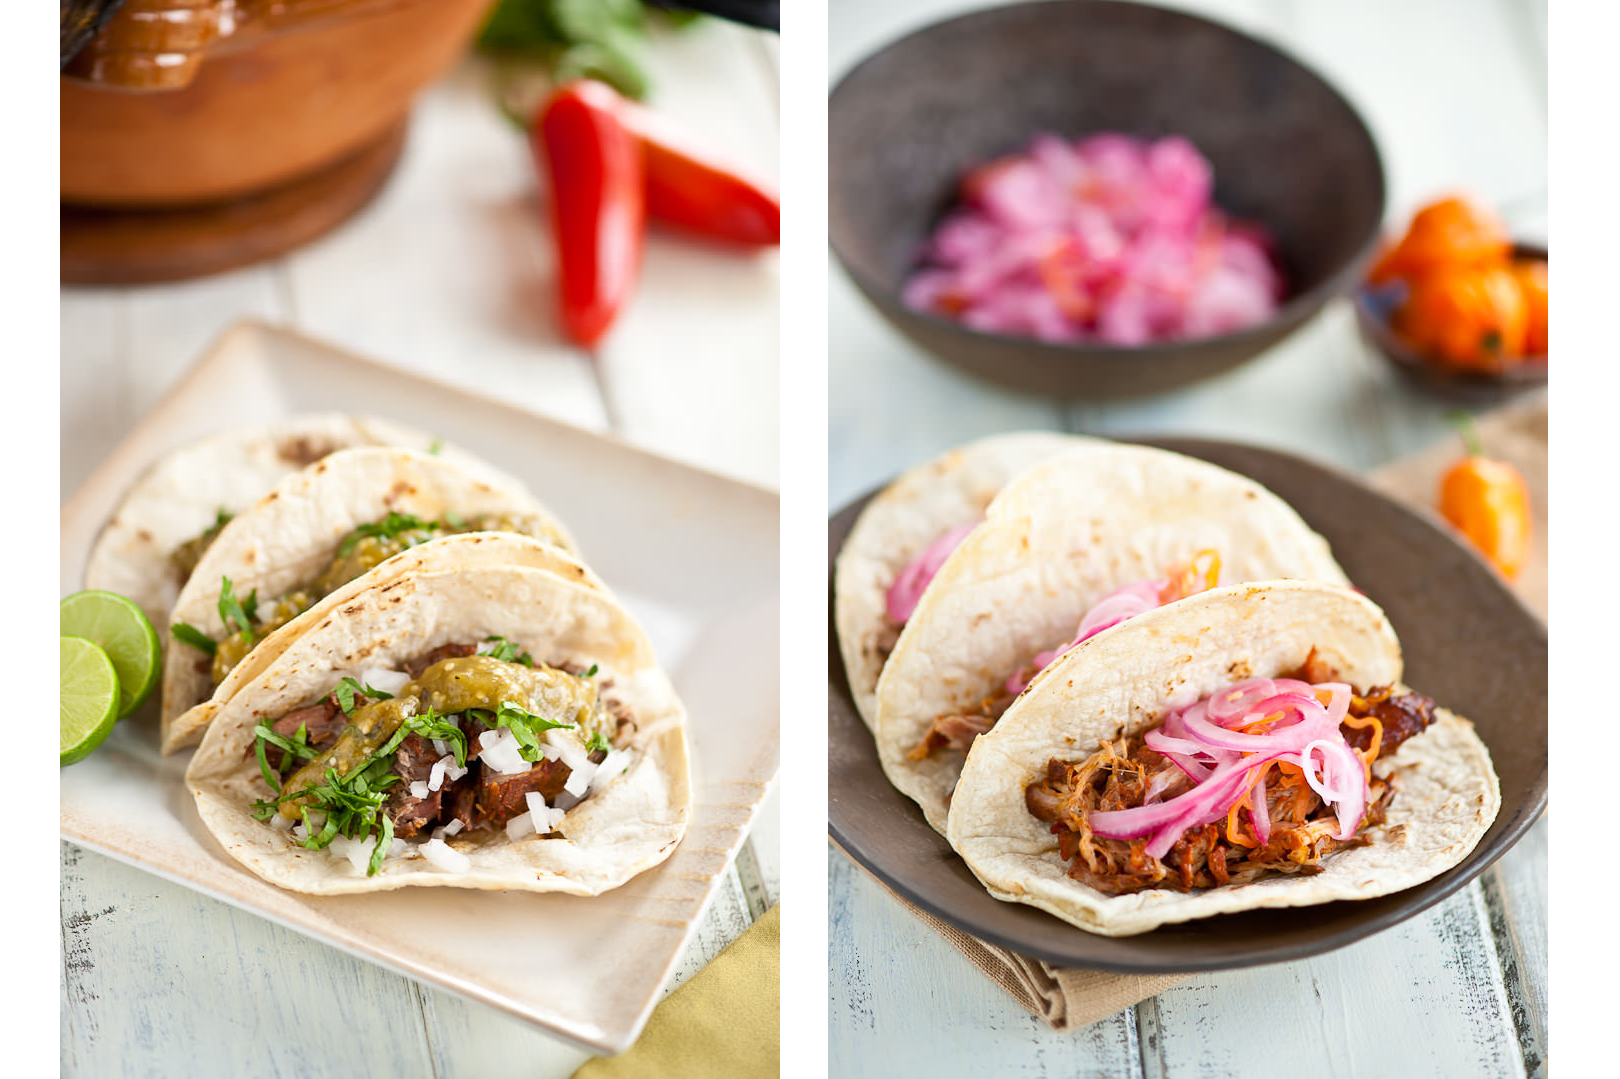 tacos - Theresa Fernandez Photography | Dallas Food Photographer